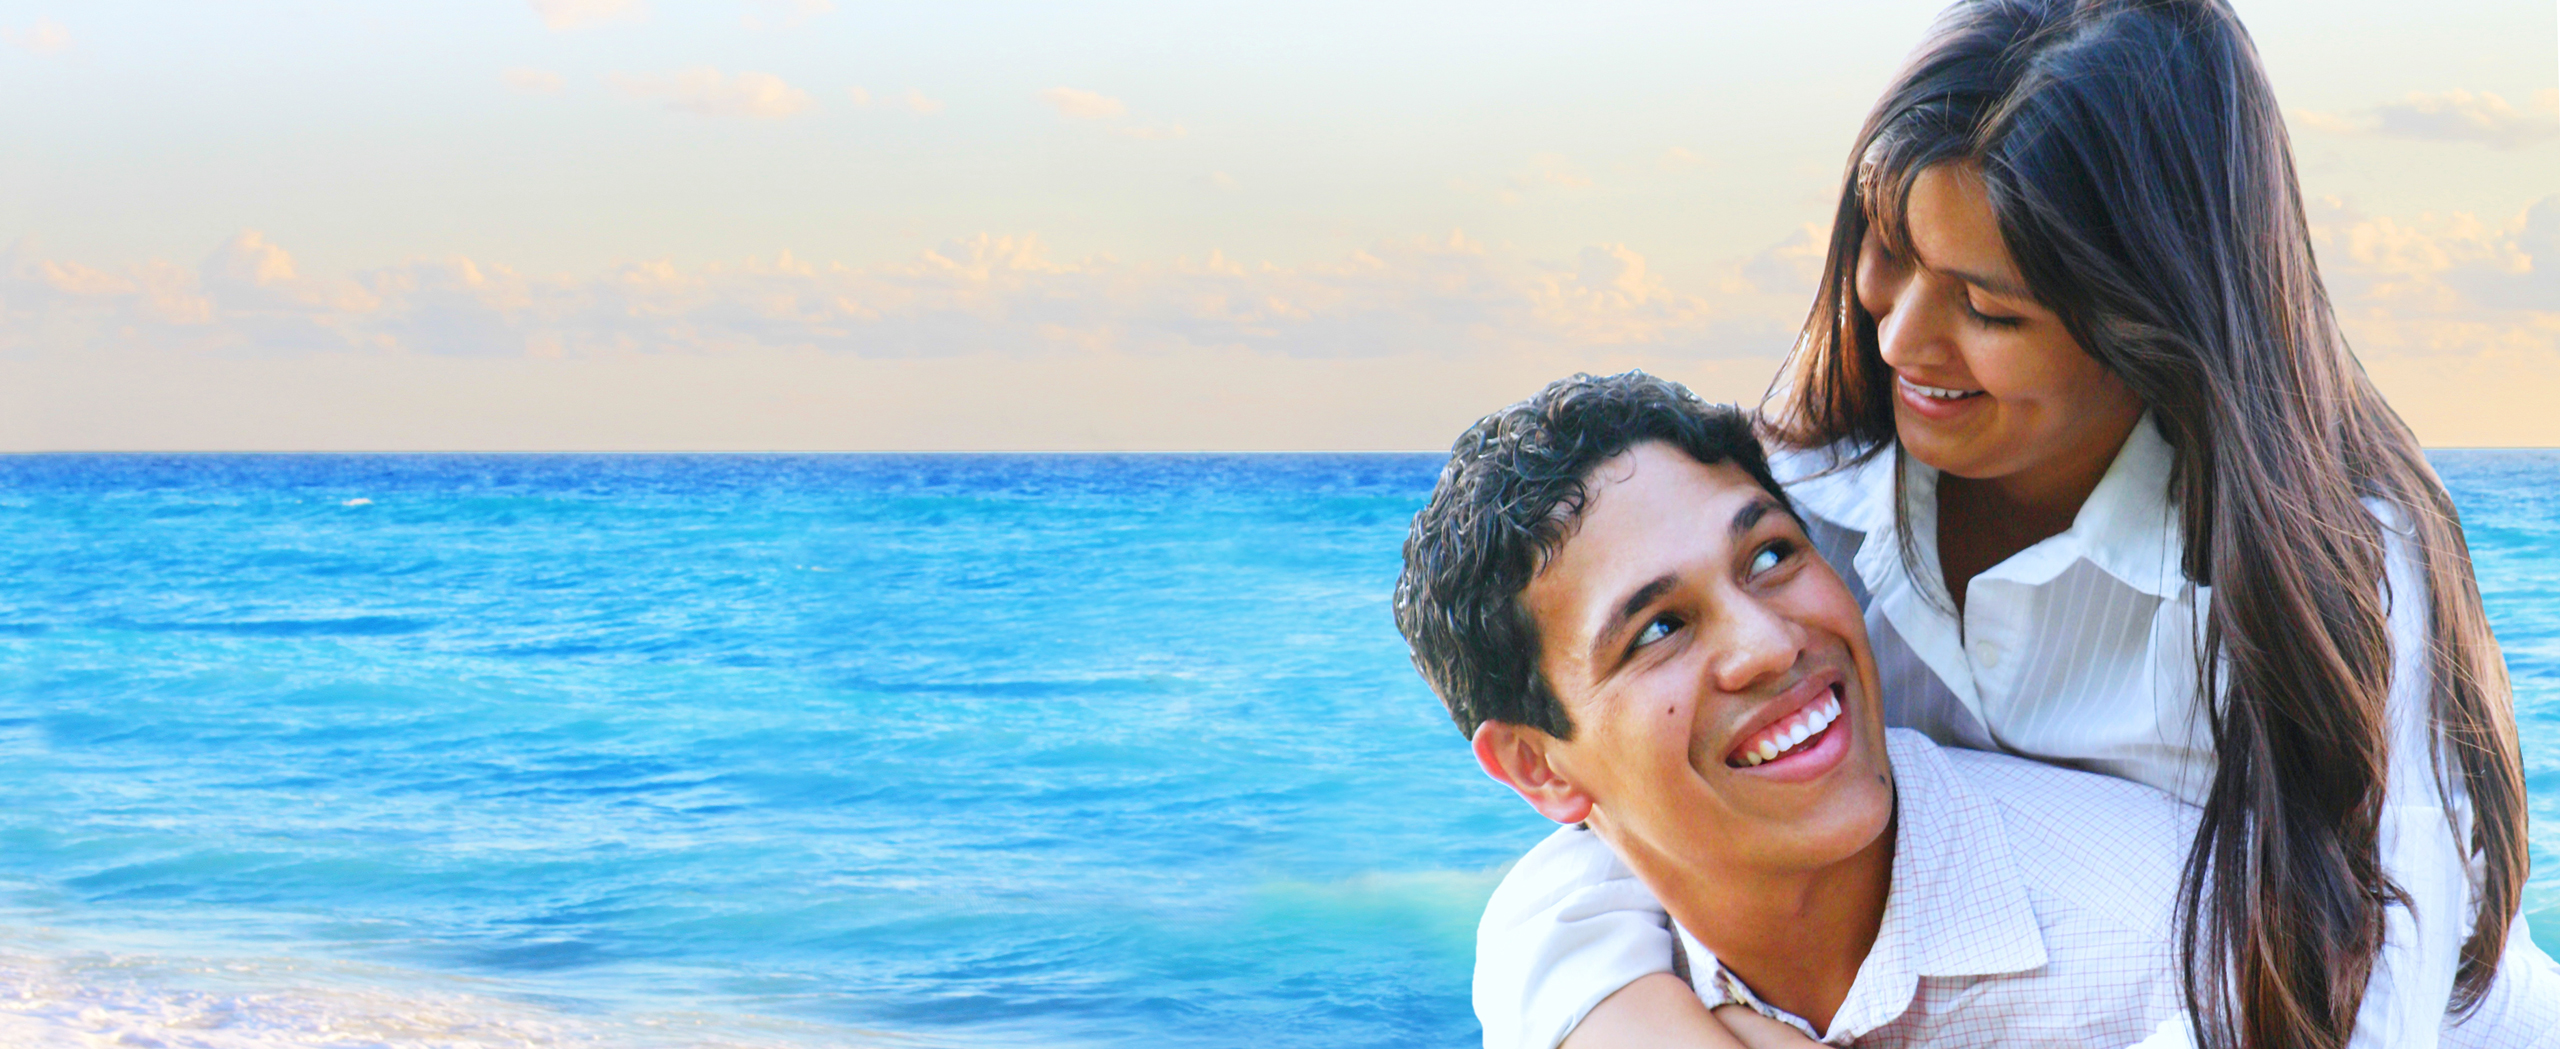 smiling couple by the ocean